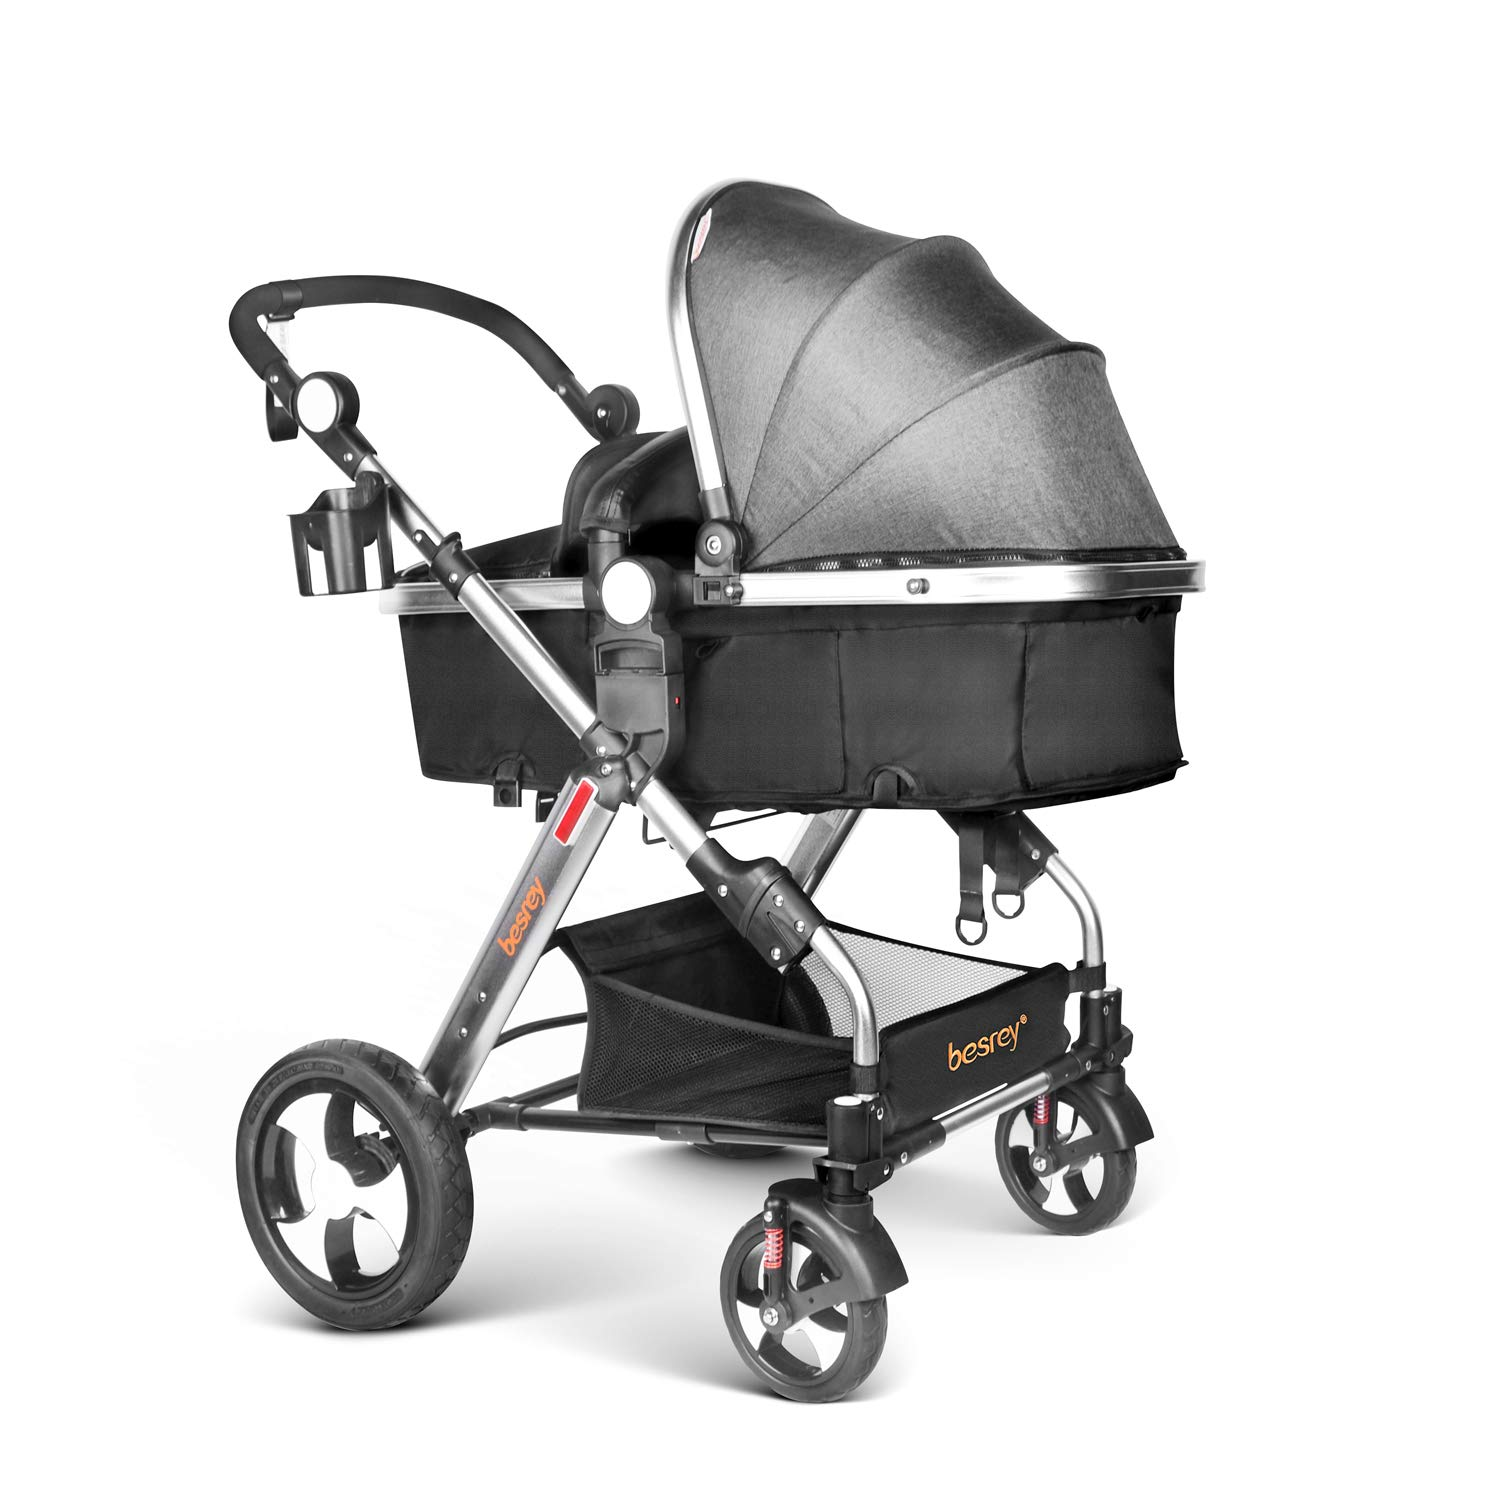 Infant Baby Stroller for Newborn and Toddler - Besrey Convertible Bassinet Stroller Luxury Pram Compact Single Baby Carriage, Gray